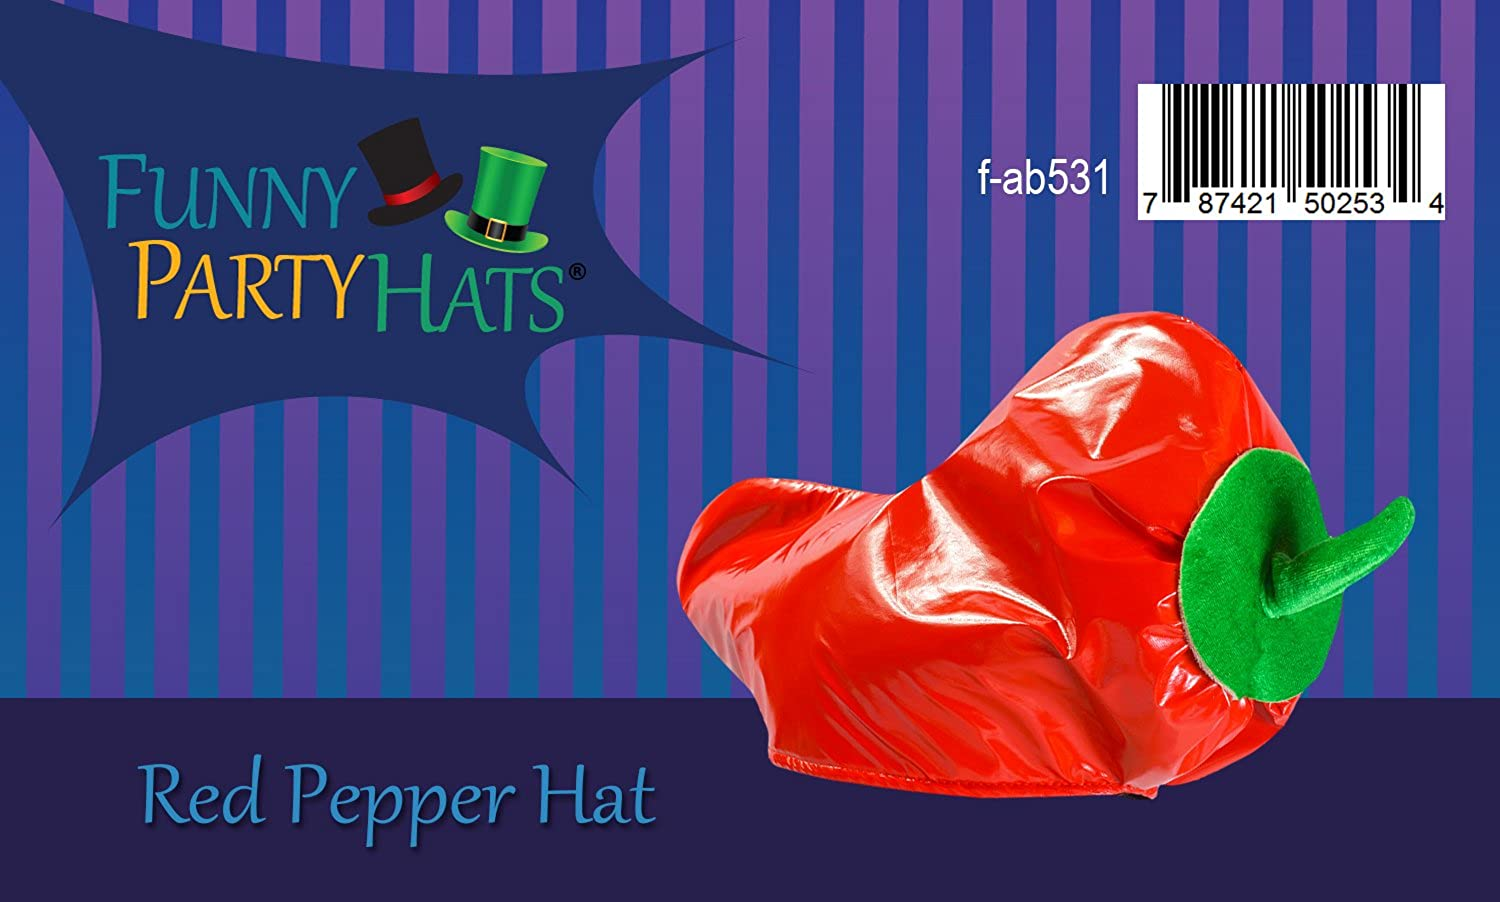 Red Pepper Hat Adults Cinco De Mayo Party Hats Novelty Hats By